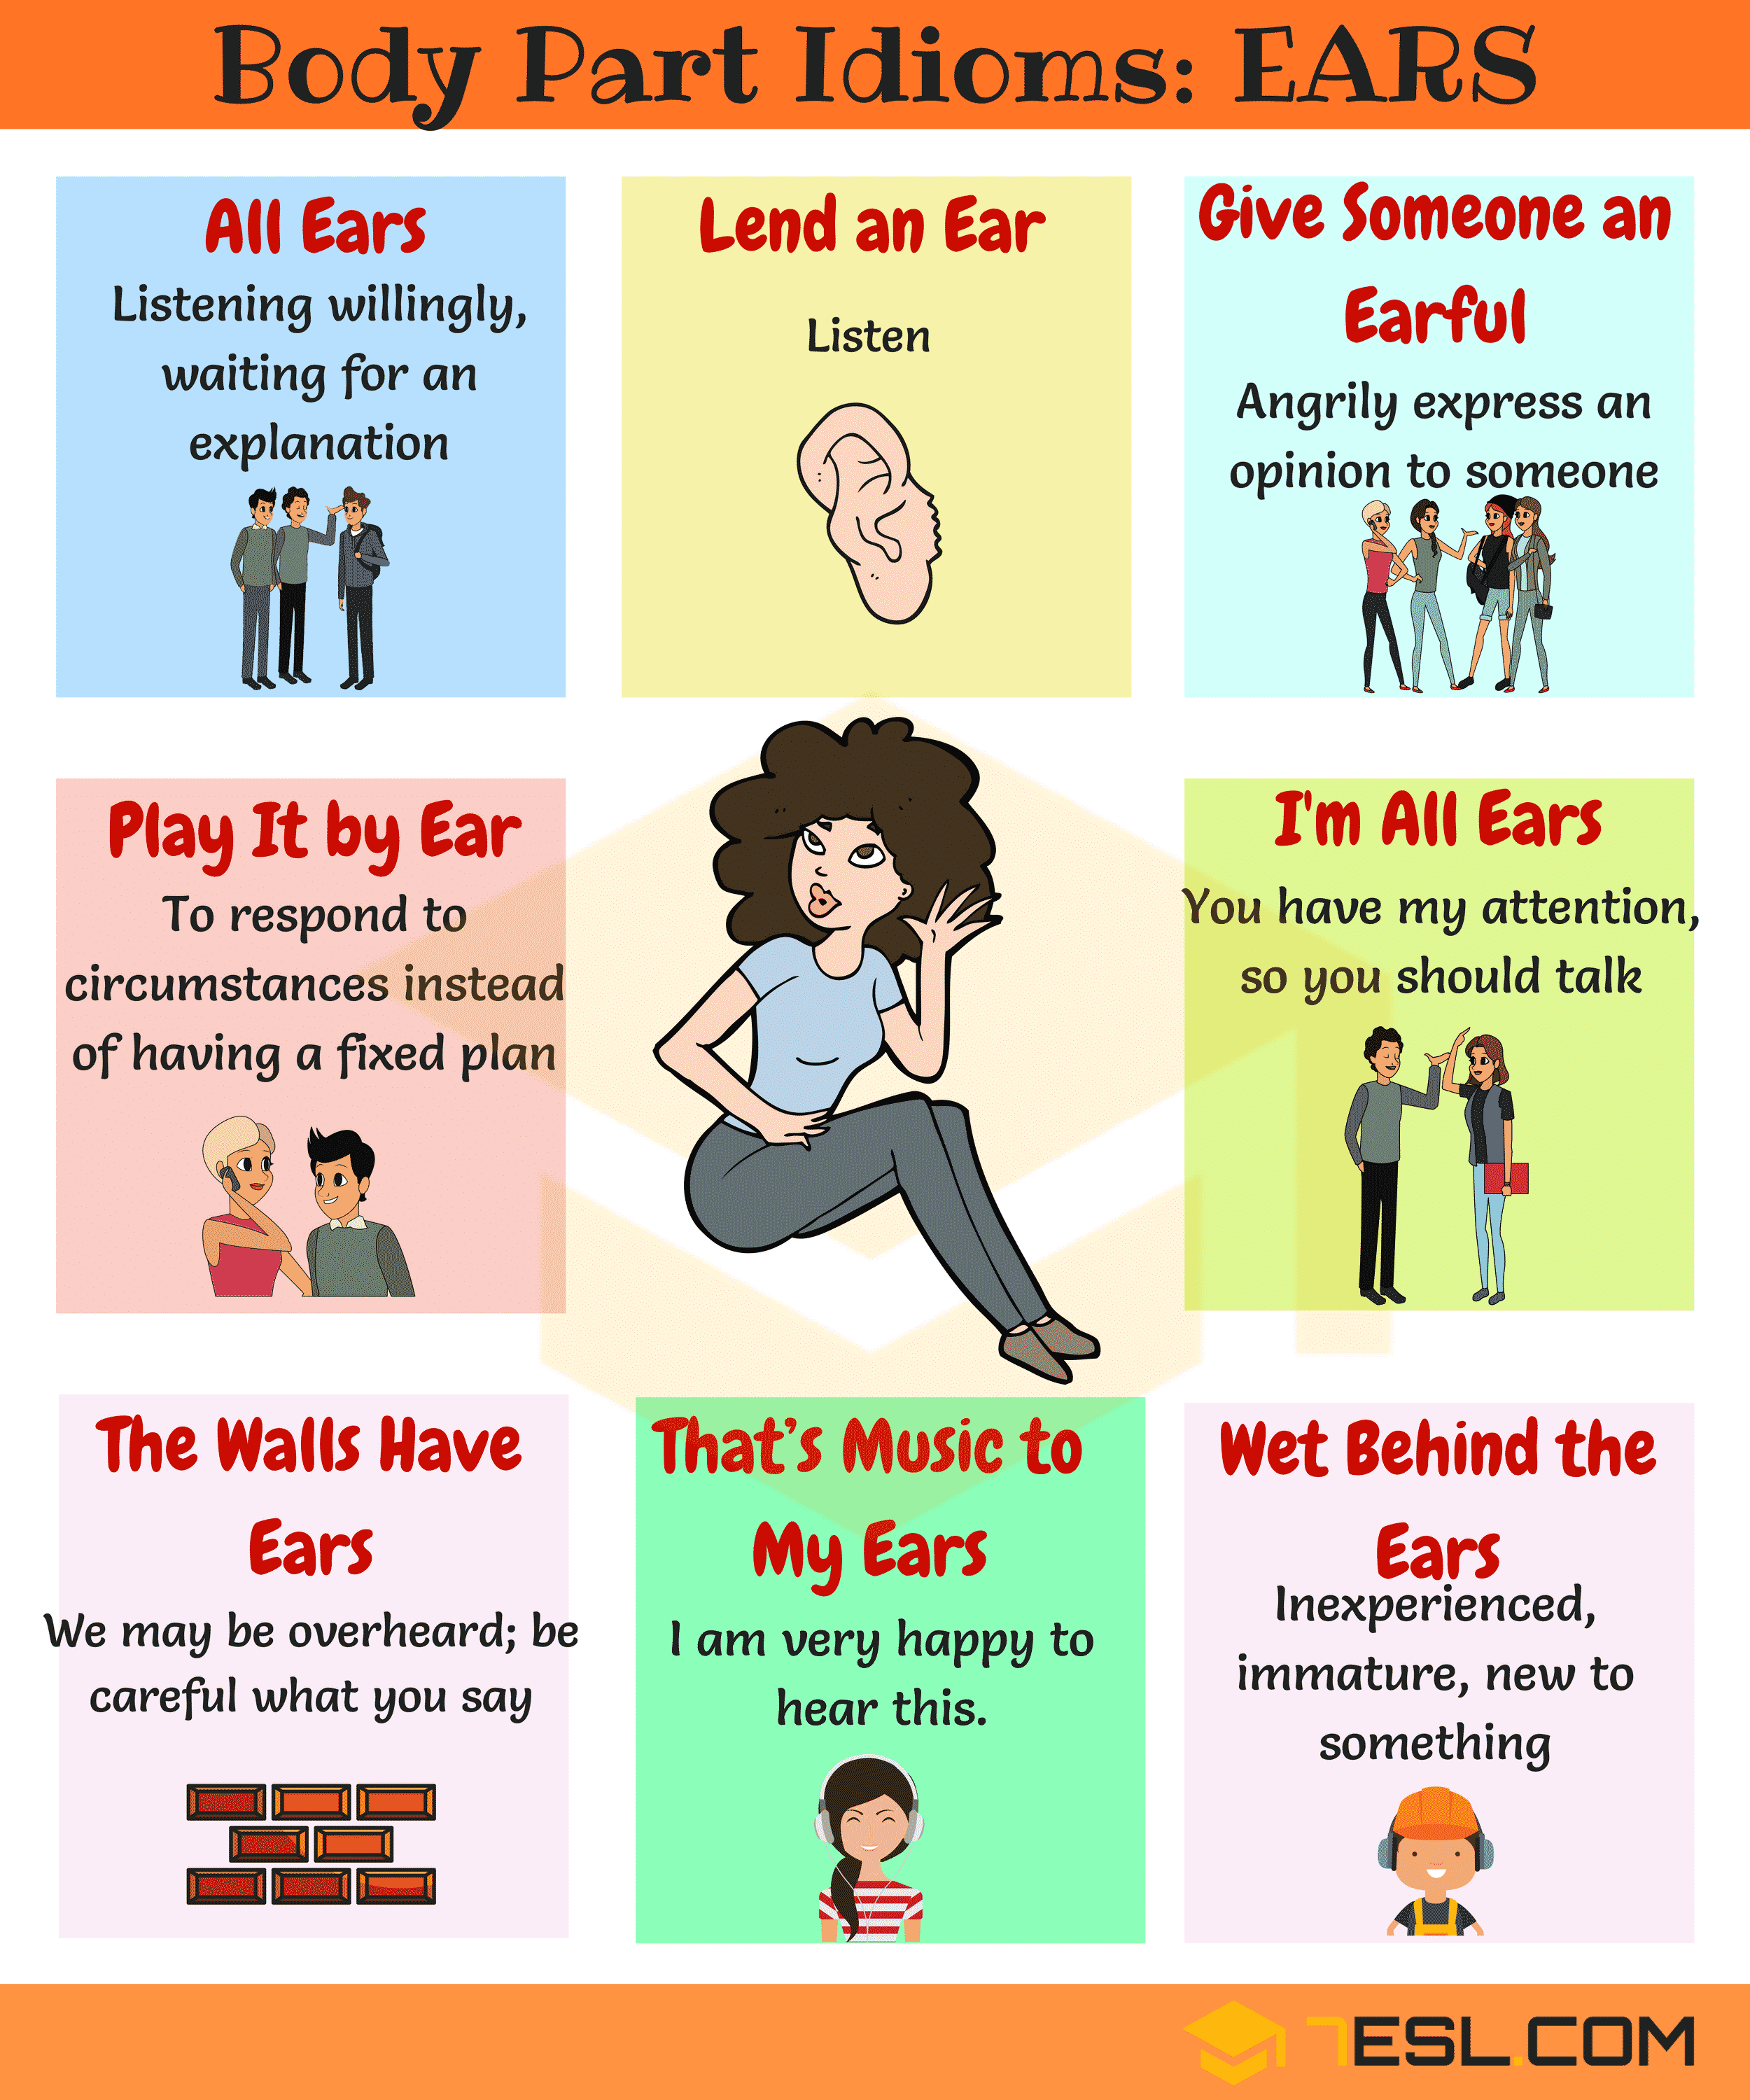 EAR Idioms! Learn commonly used Idioms with EARS in English with meaning, example sentences and picture.